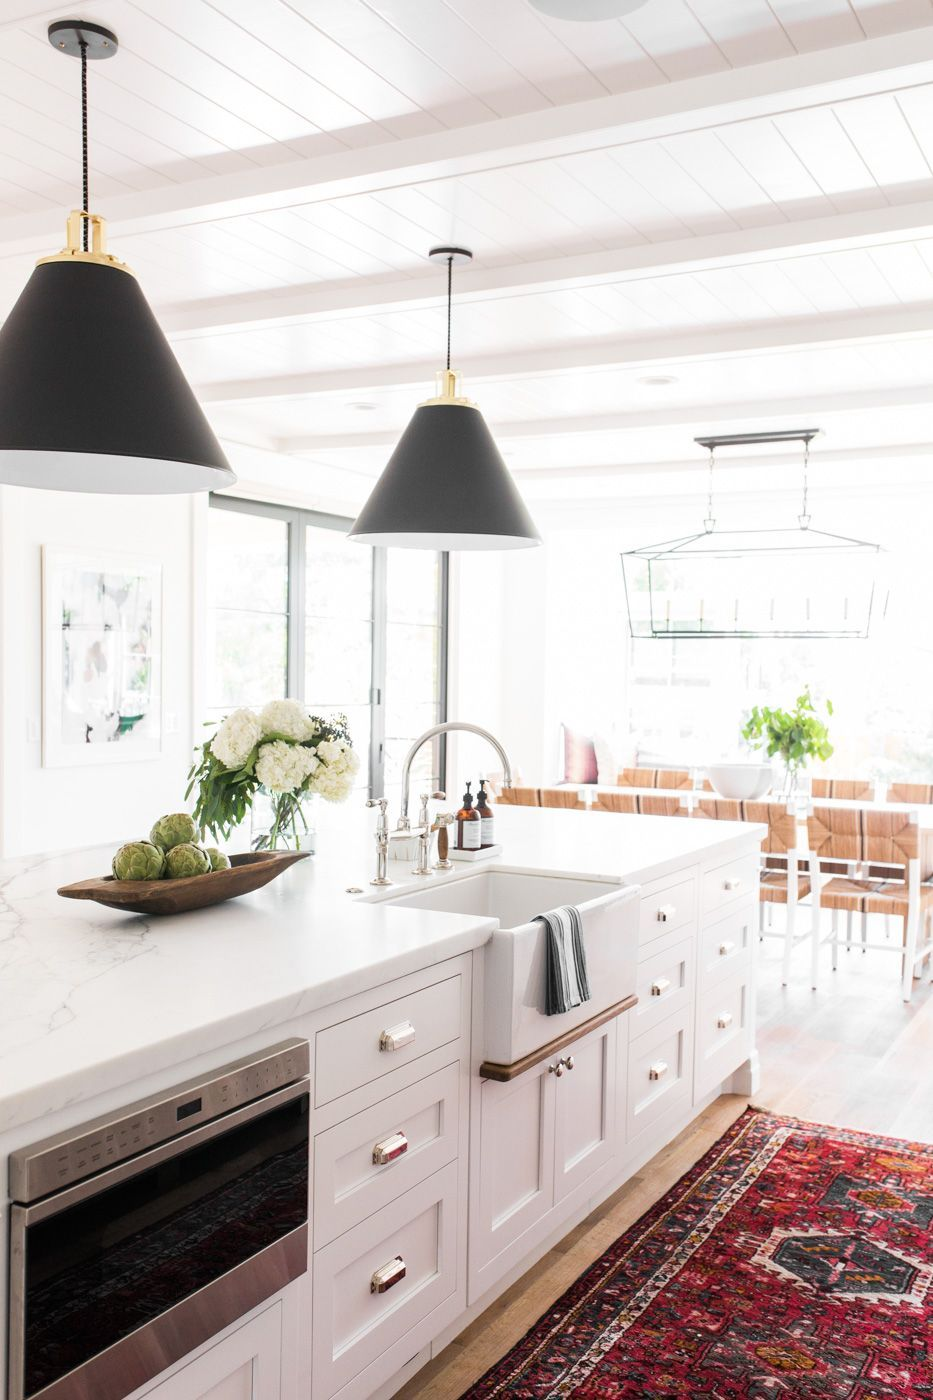 Modern farmhouse meets the hamptons in studio mcgees latest remodel vintage kitchen rug black cone pendants marble counters farmhouse sink